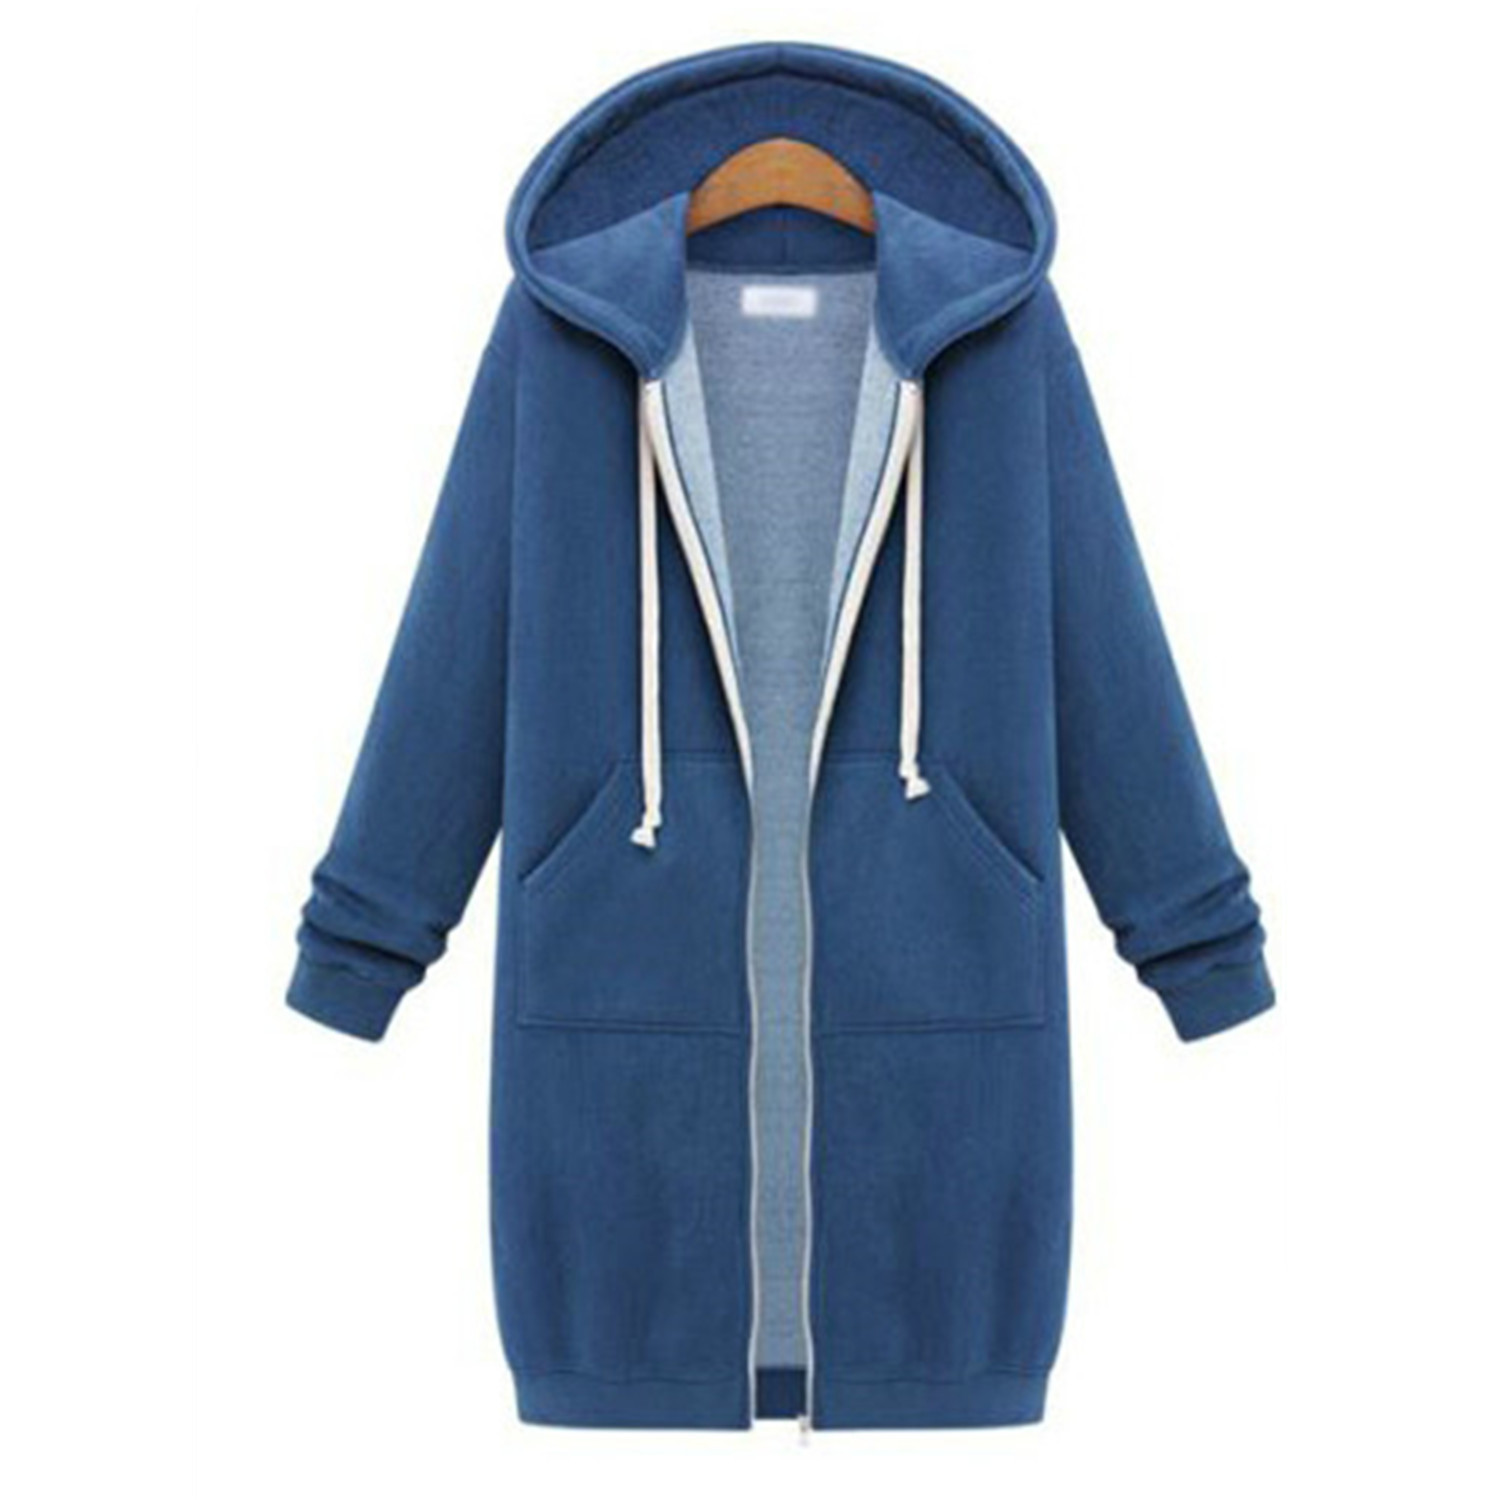 Winter / autumn / 2019 wish popular women's clothing European and American hooded long sleeve medium length solid color zipper and plush coat sweater